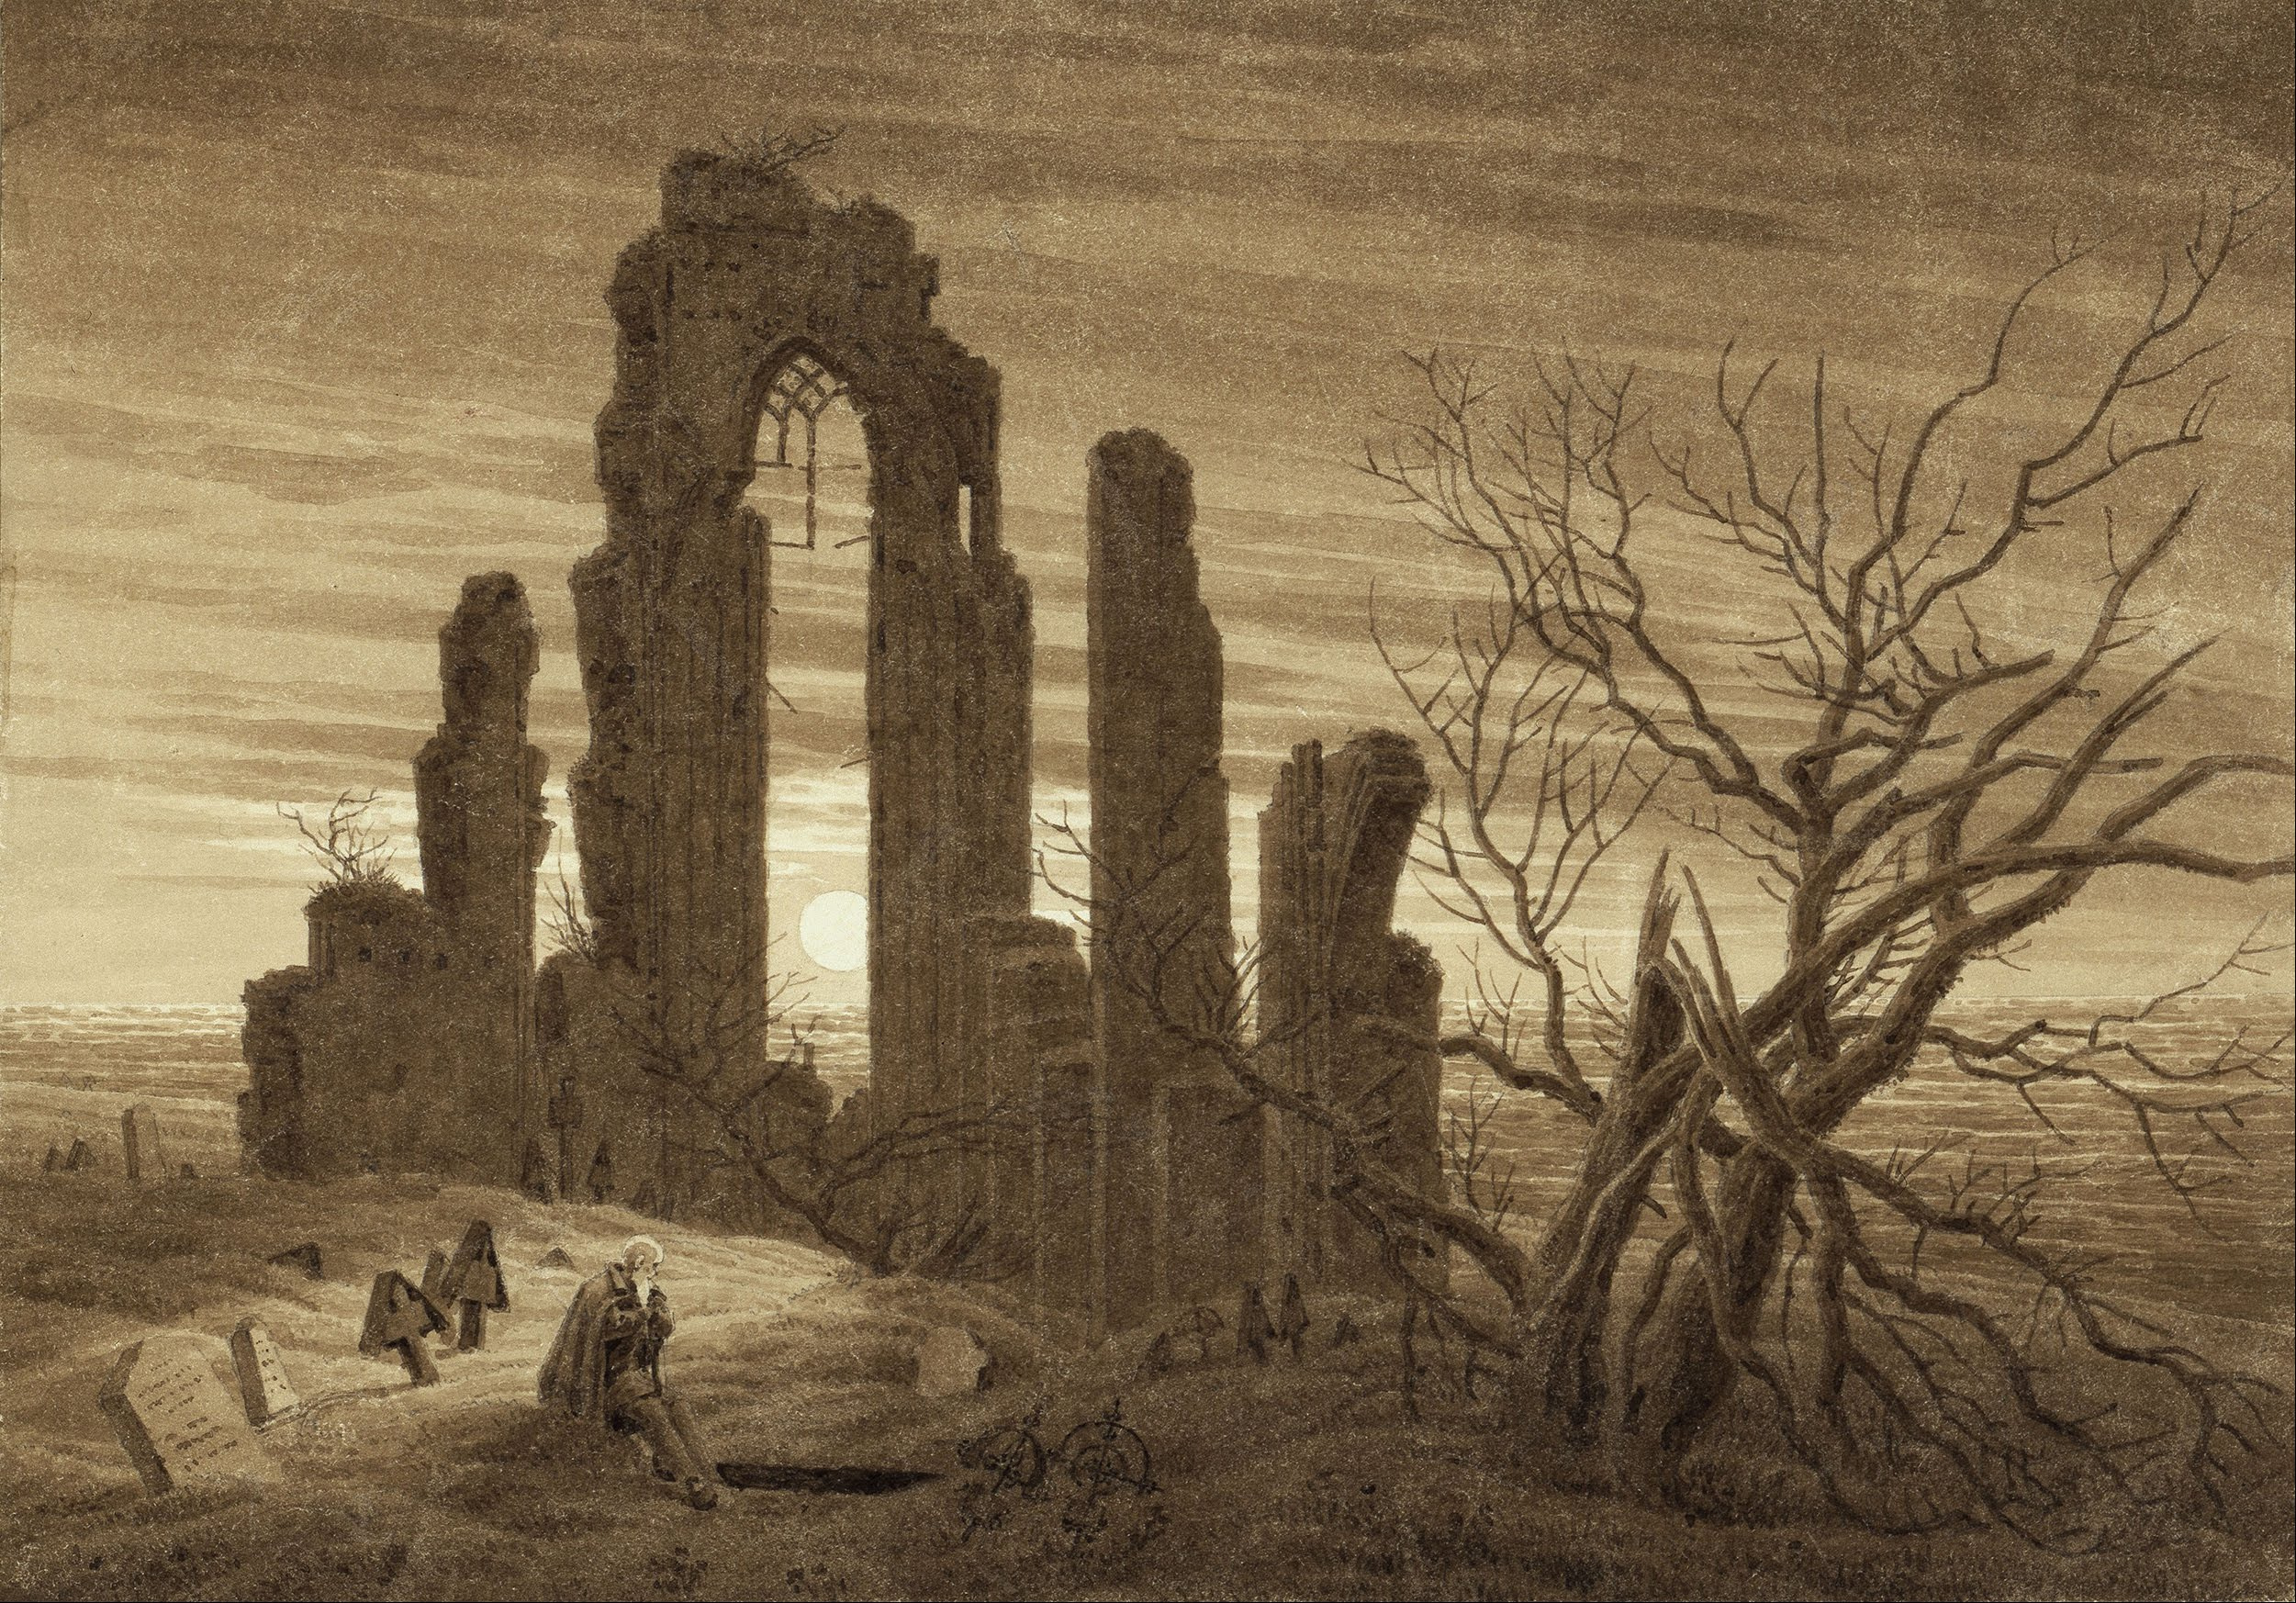 Caspar_David_Friedrich_-_Winter___Night___Old_Age_and_Death__from_the_times_of_day_and_ages_of_man_cycle_of_1803__-_Google_Art_Project.jpg